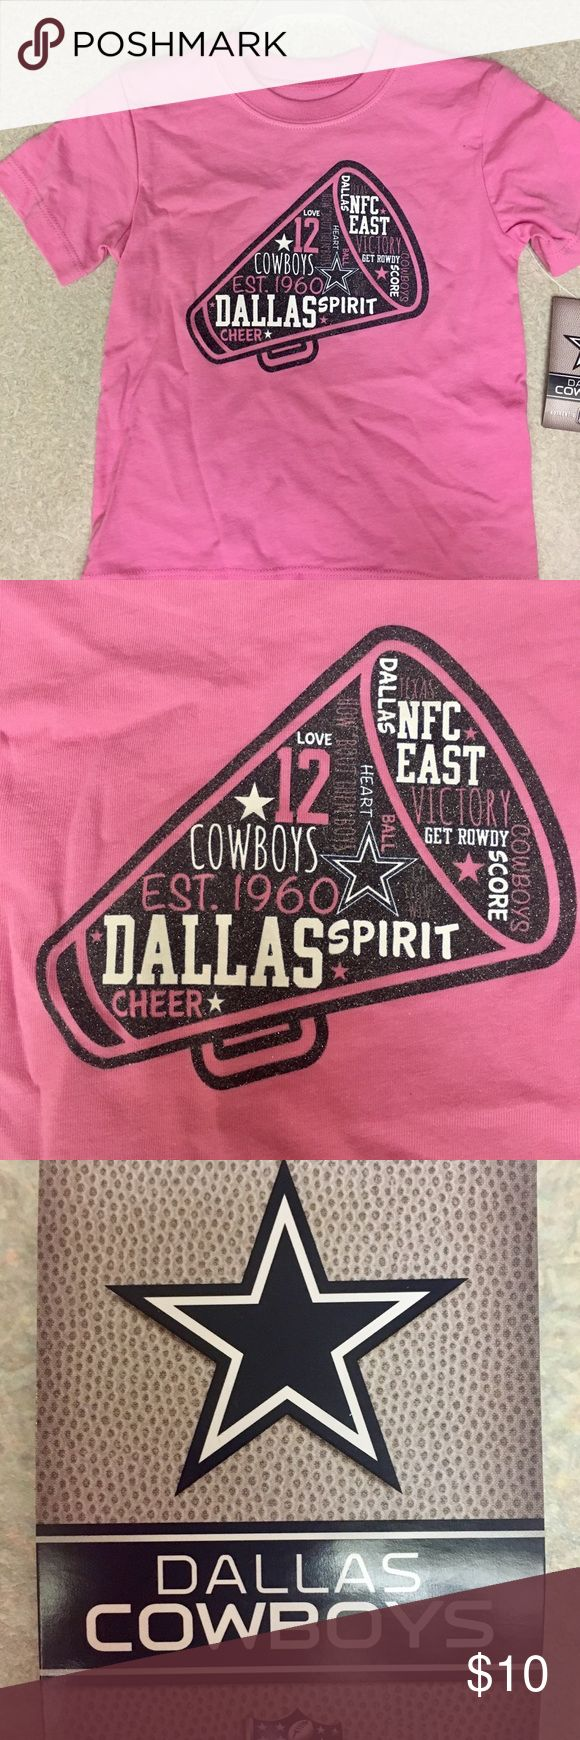 Dallas Cowboys Authentic Apparel T-Shirt 2T Pink and blingy girls Dallas Cowboy t-shirt 2T Dallas Cowboy Authentic Apparel Shirts & Tops Tees - Short Sleeve